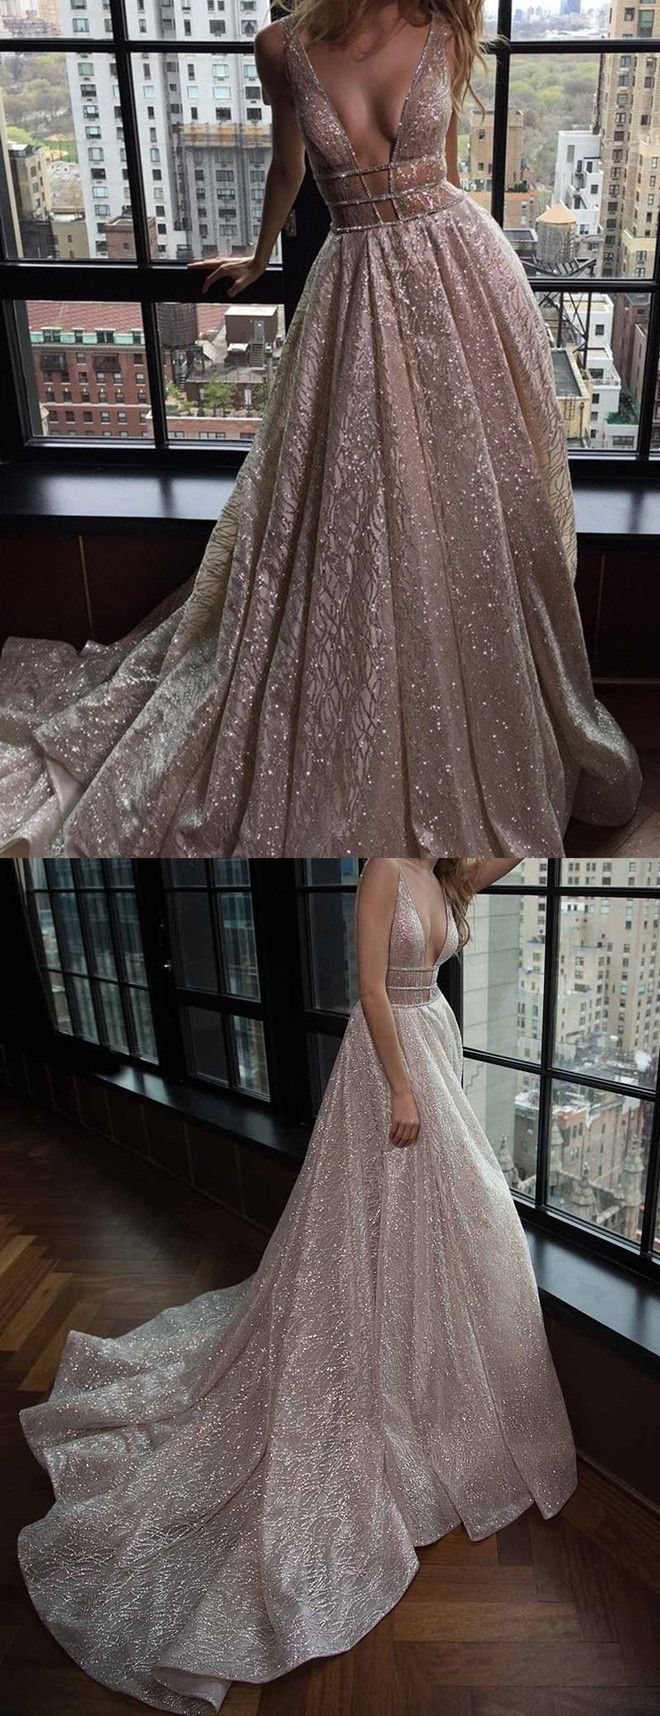 cut out dresses,2017 prom dresses,sexy prom dresses,deep v-neck dresses,luxury prom dresses